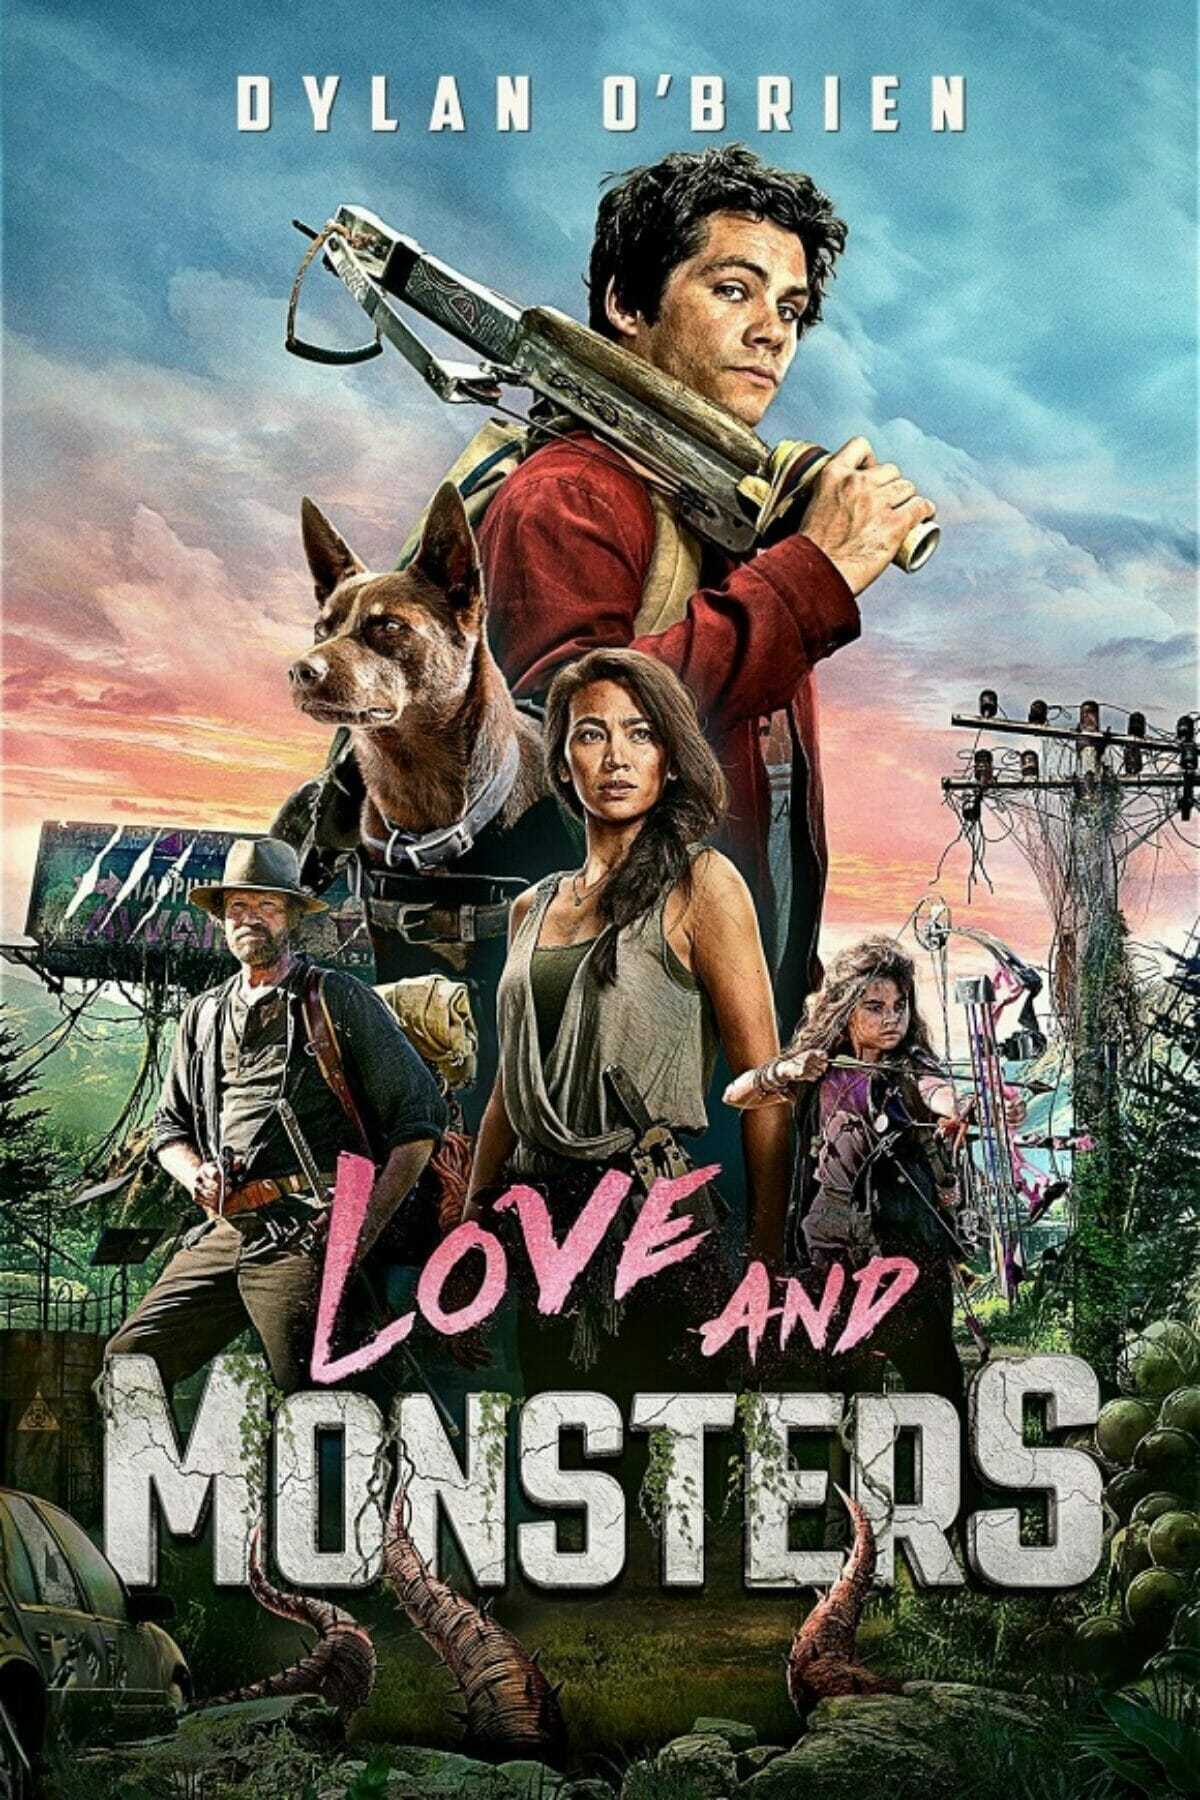 Love-and-monsters-poster